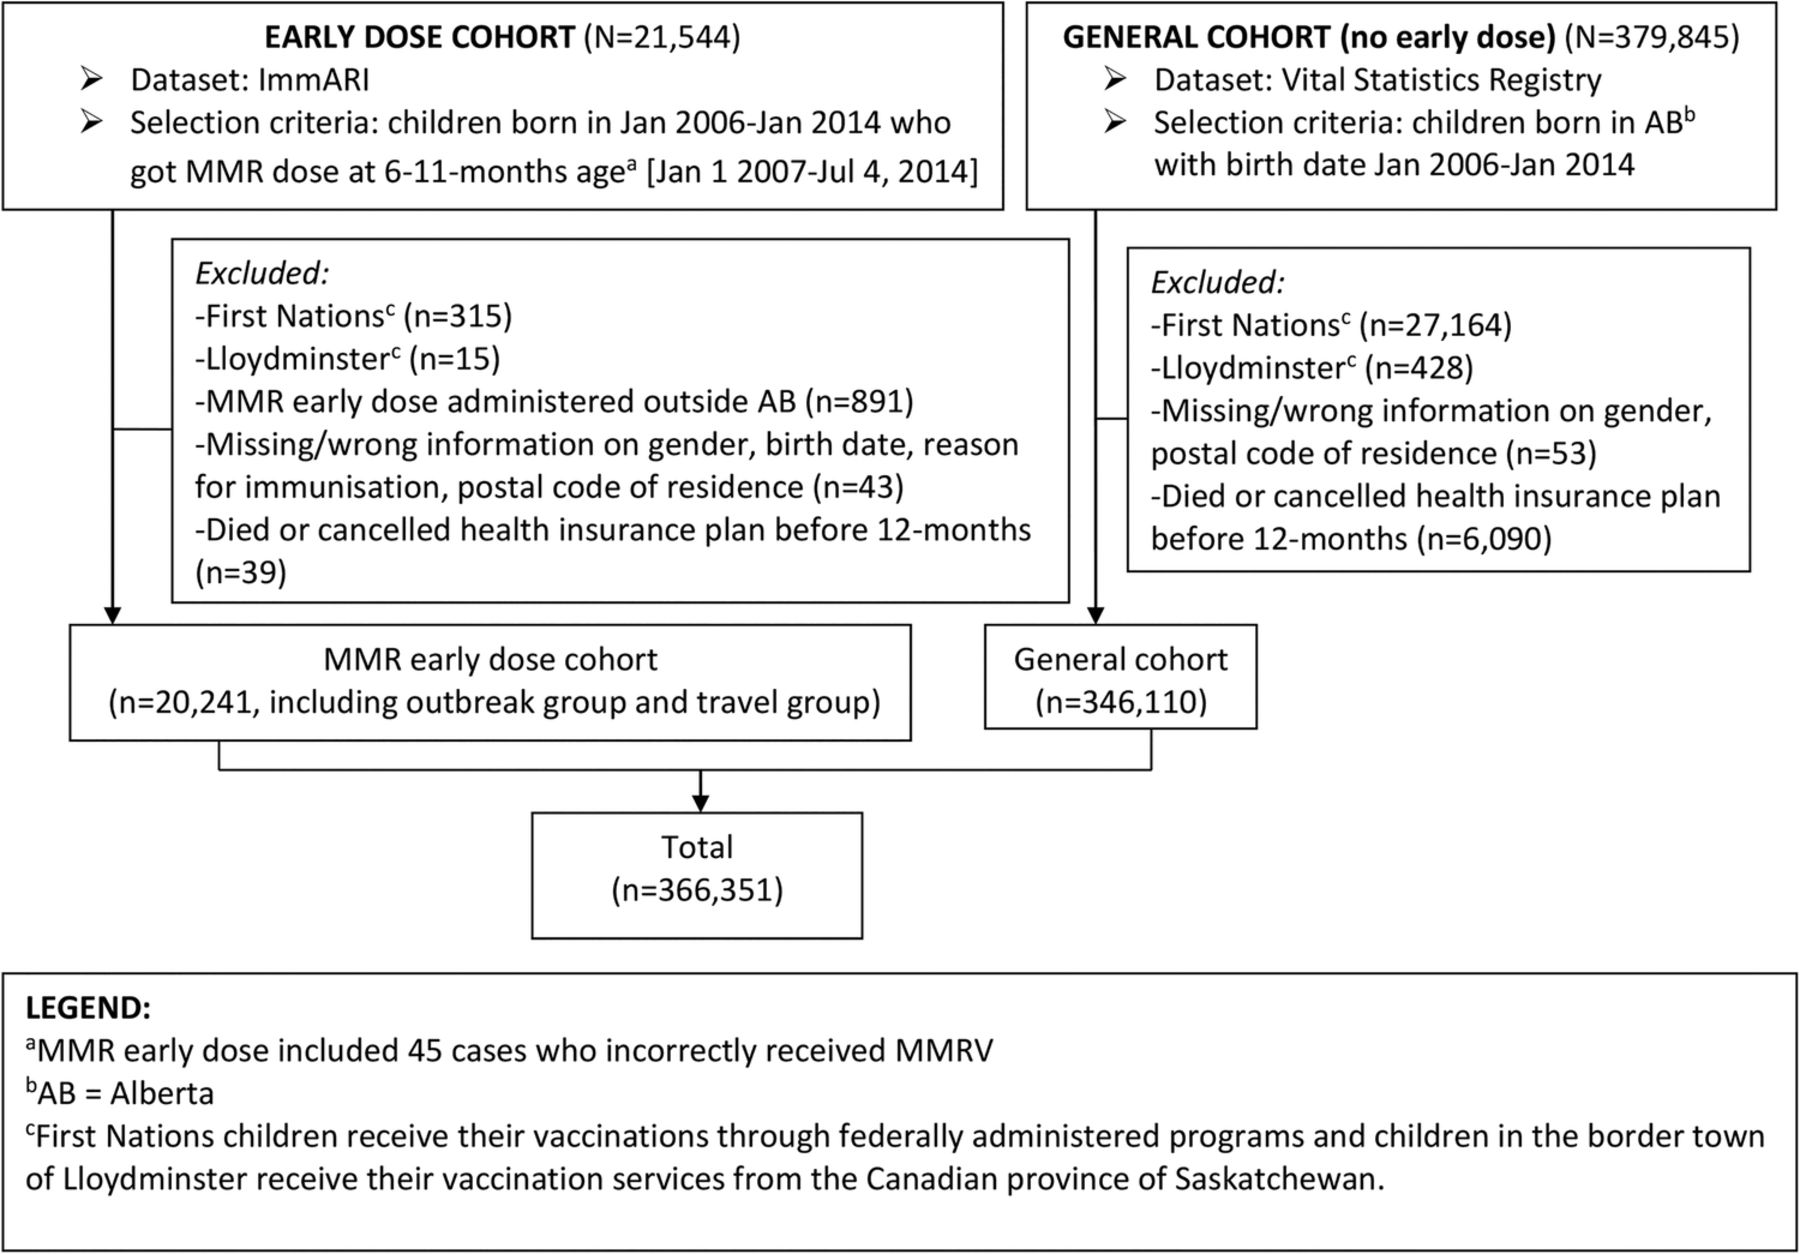 Do children who receive an 'early dose' of MMR vaccine